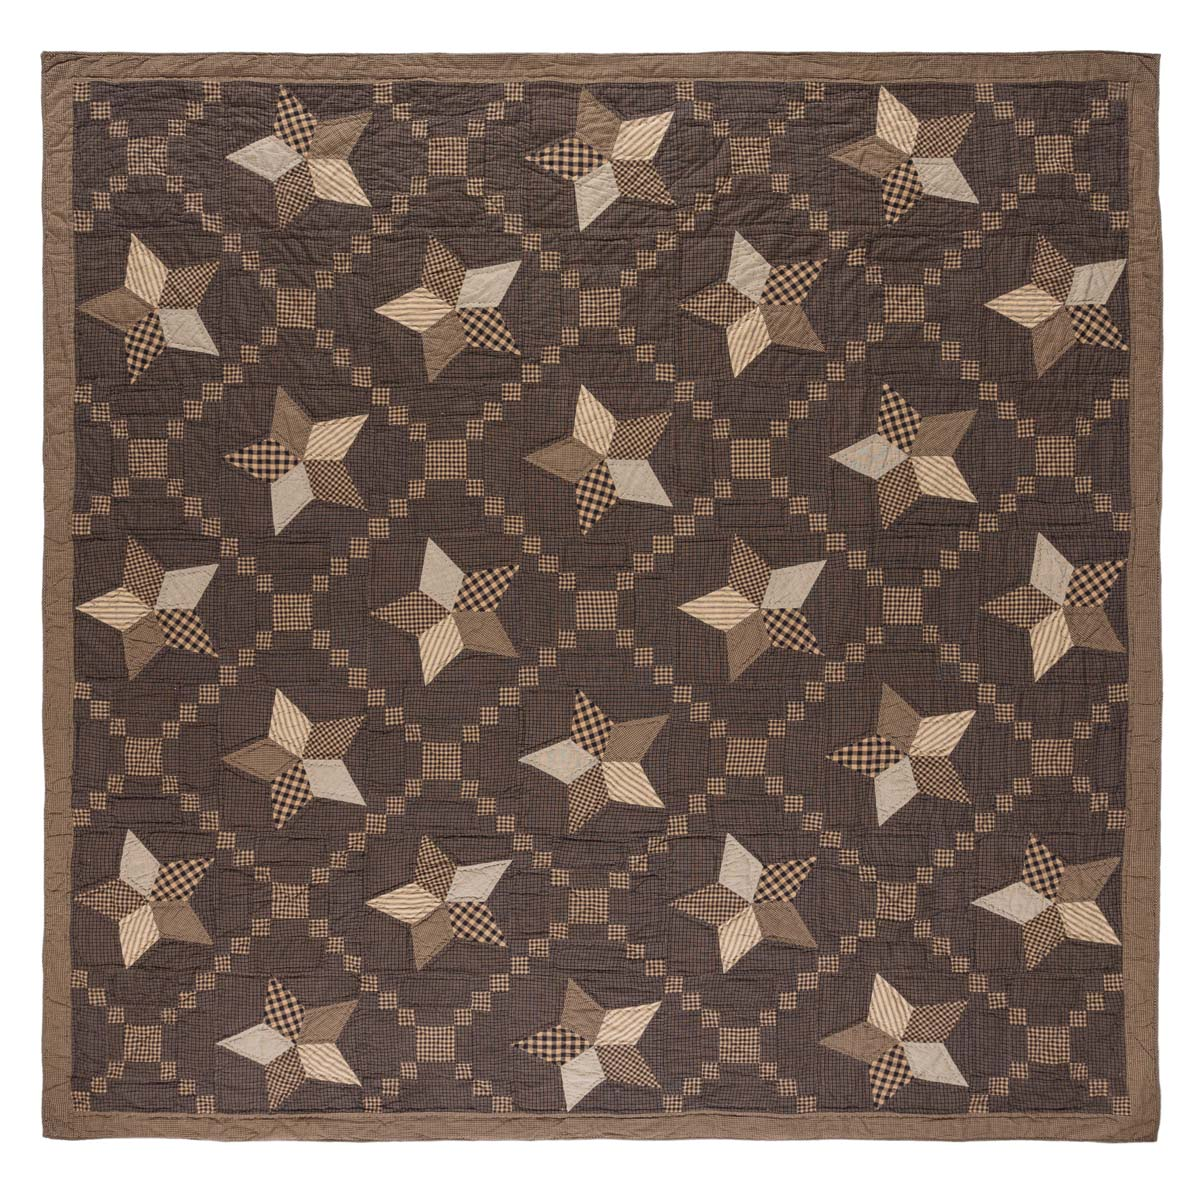 Farmhouse Star Quilt.